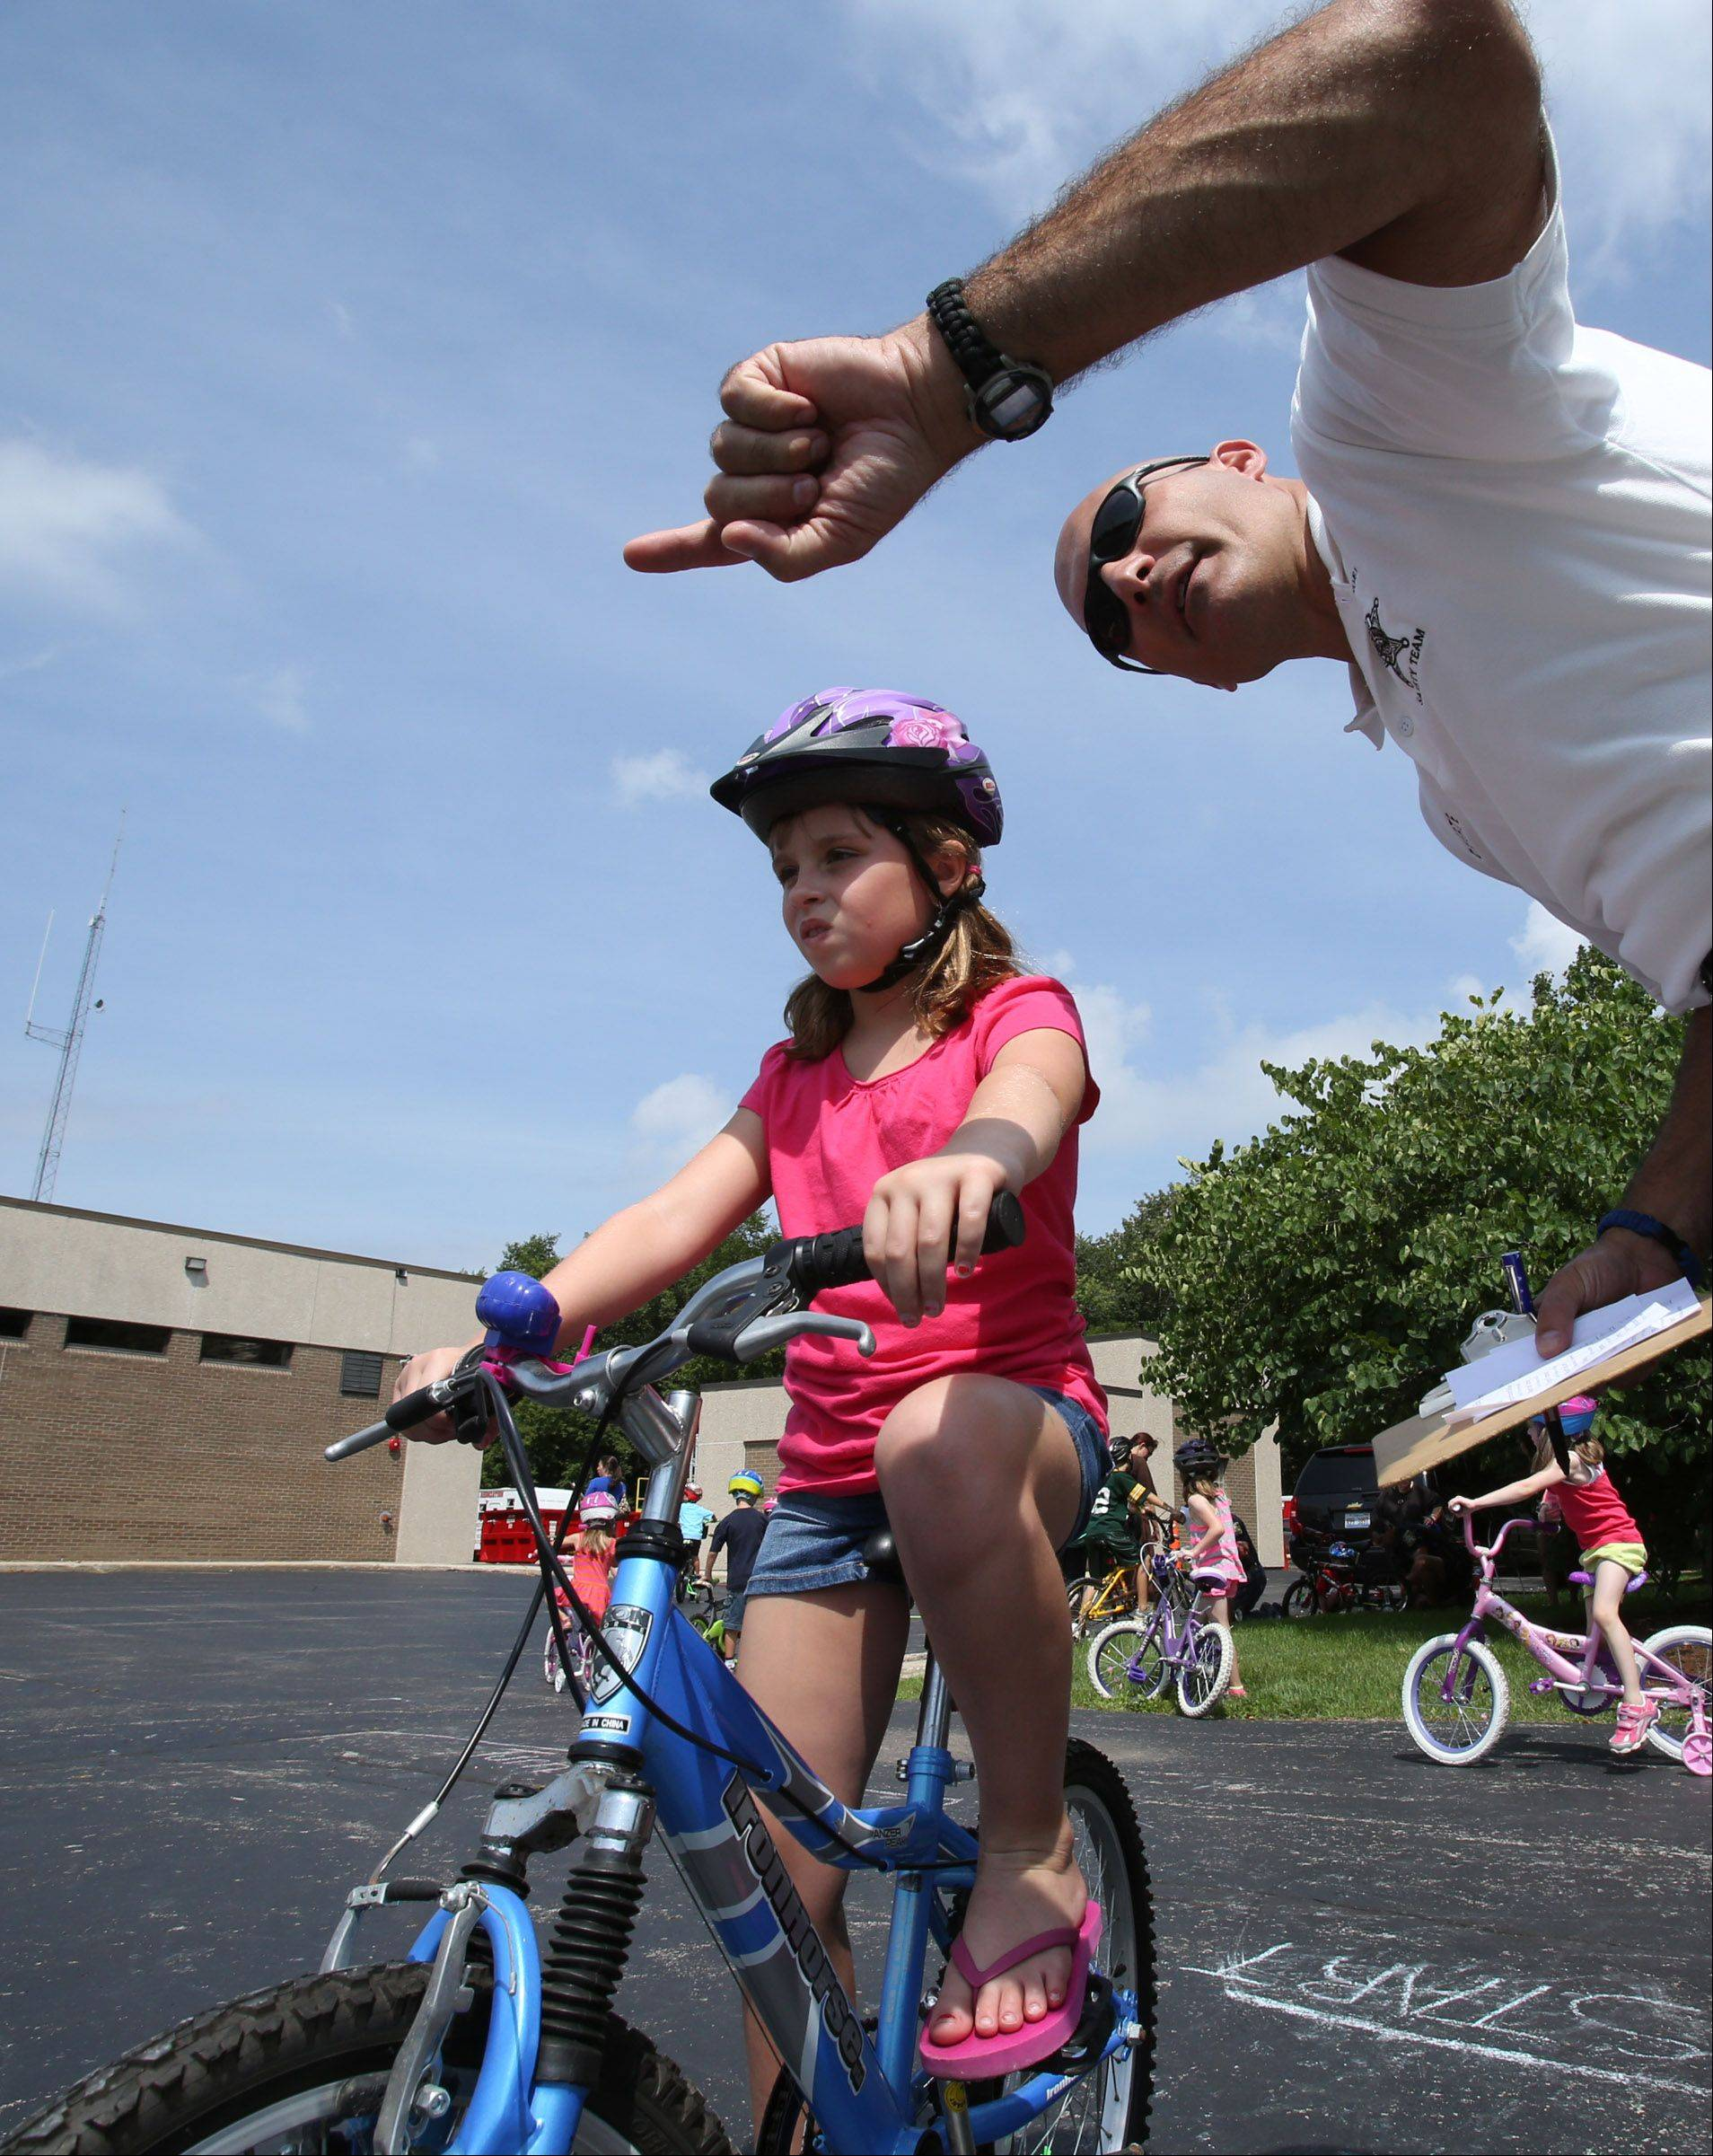 Gurnee police officer Martin Deperte gives riding course instructions to Lindsey Prims, 8, of Gurnee, during a Gurnee Days bike rodeo at Fire Station #1 Friday.